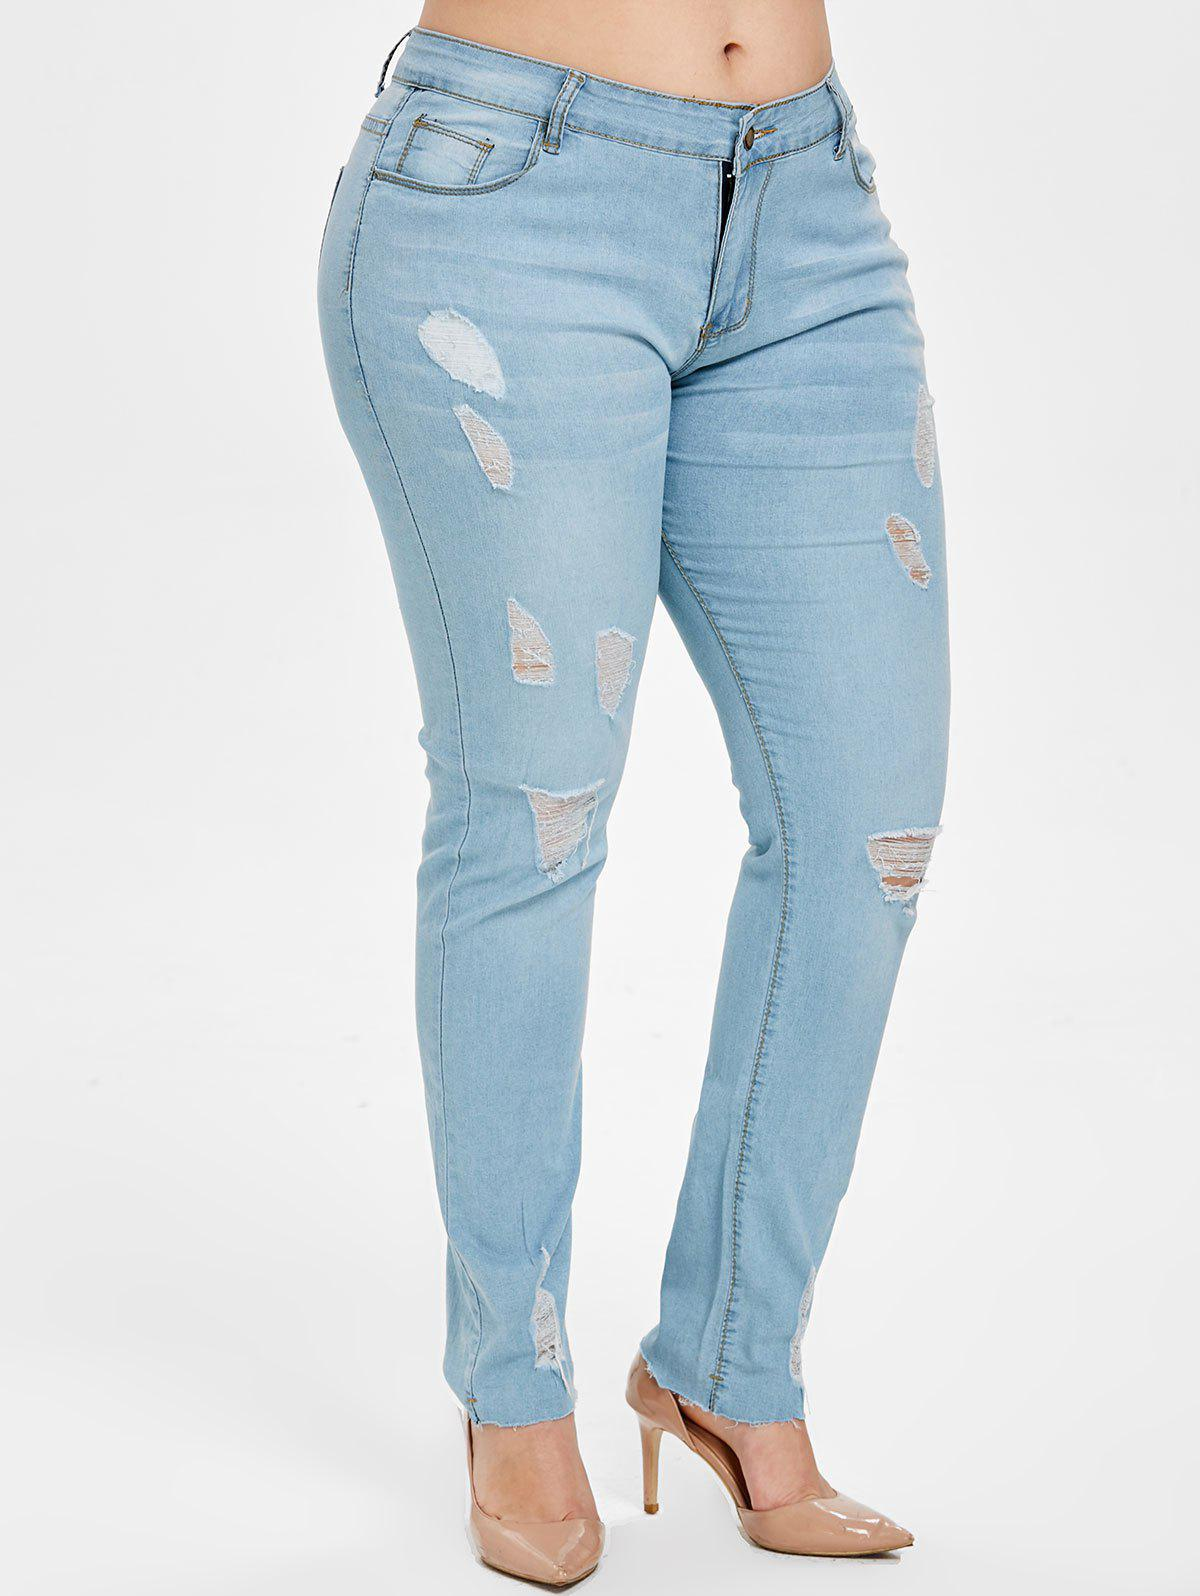 8a14c9cef8 49% OFF] Light Wash Plus Size Ripped Pencil Jeans | Rosegal